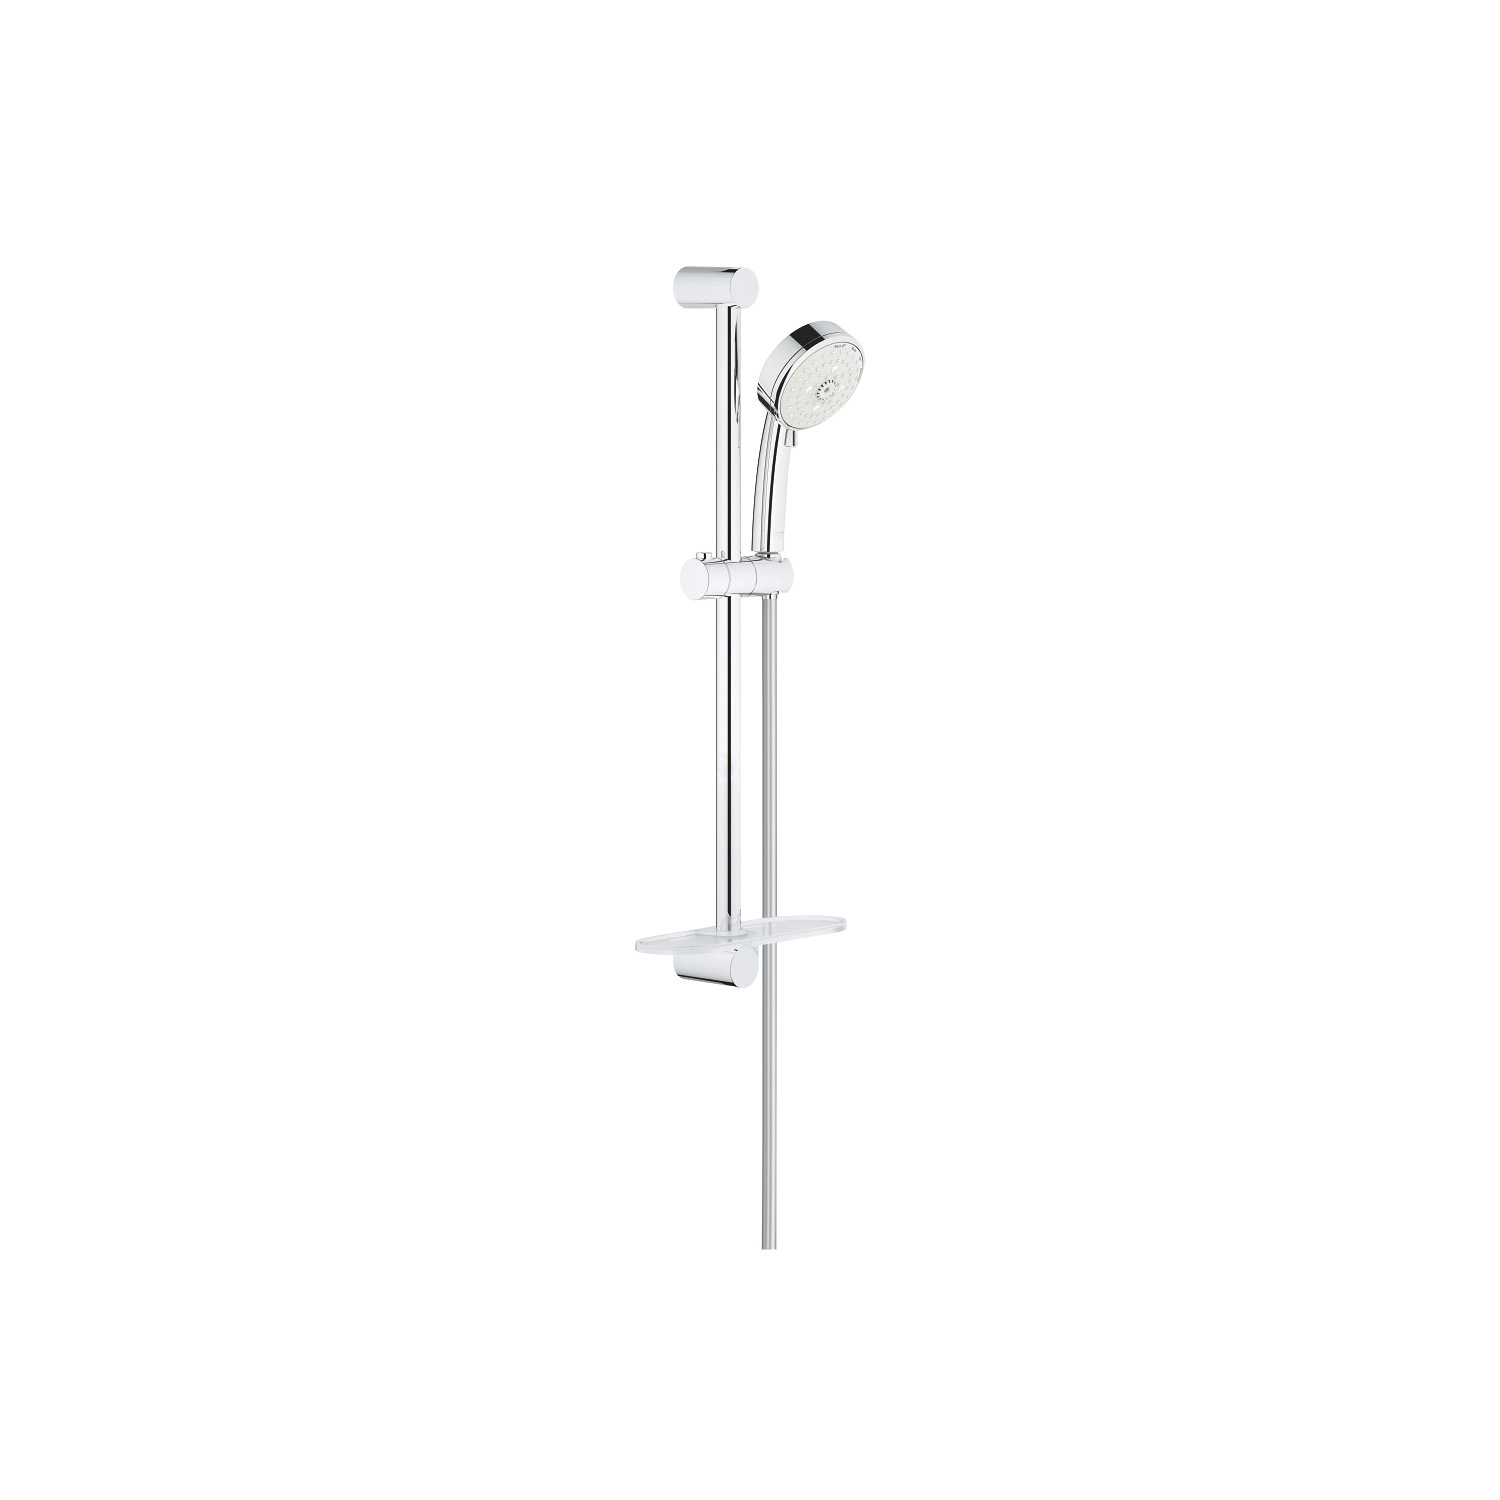 GROHE 27577002 New Tempesta Cosmopolitan 100 IV Shower Rail Set, 3-15/16 in Dia Head, Rain O2/Rain/Massage/Jet Pattern, 2.5 gpm, 69 in L Hose, StarLight® Chrome Plated, With Slide Bar: Yes, Import